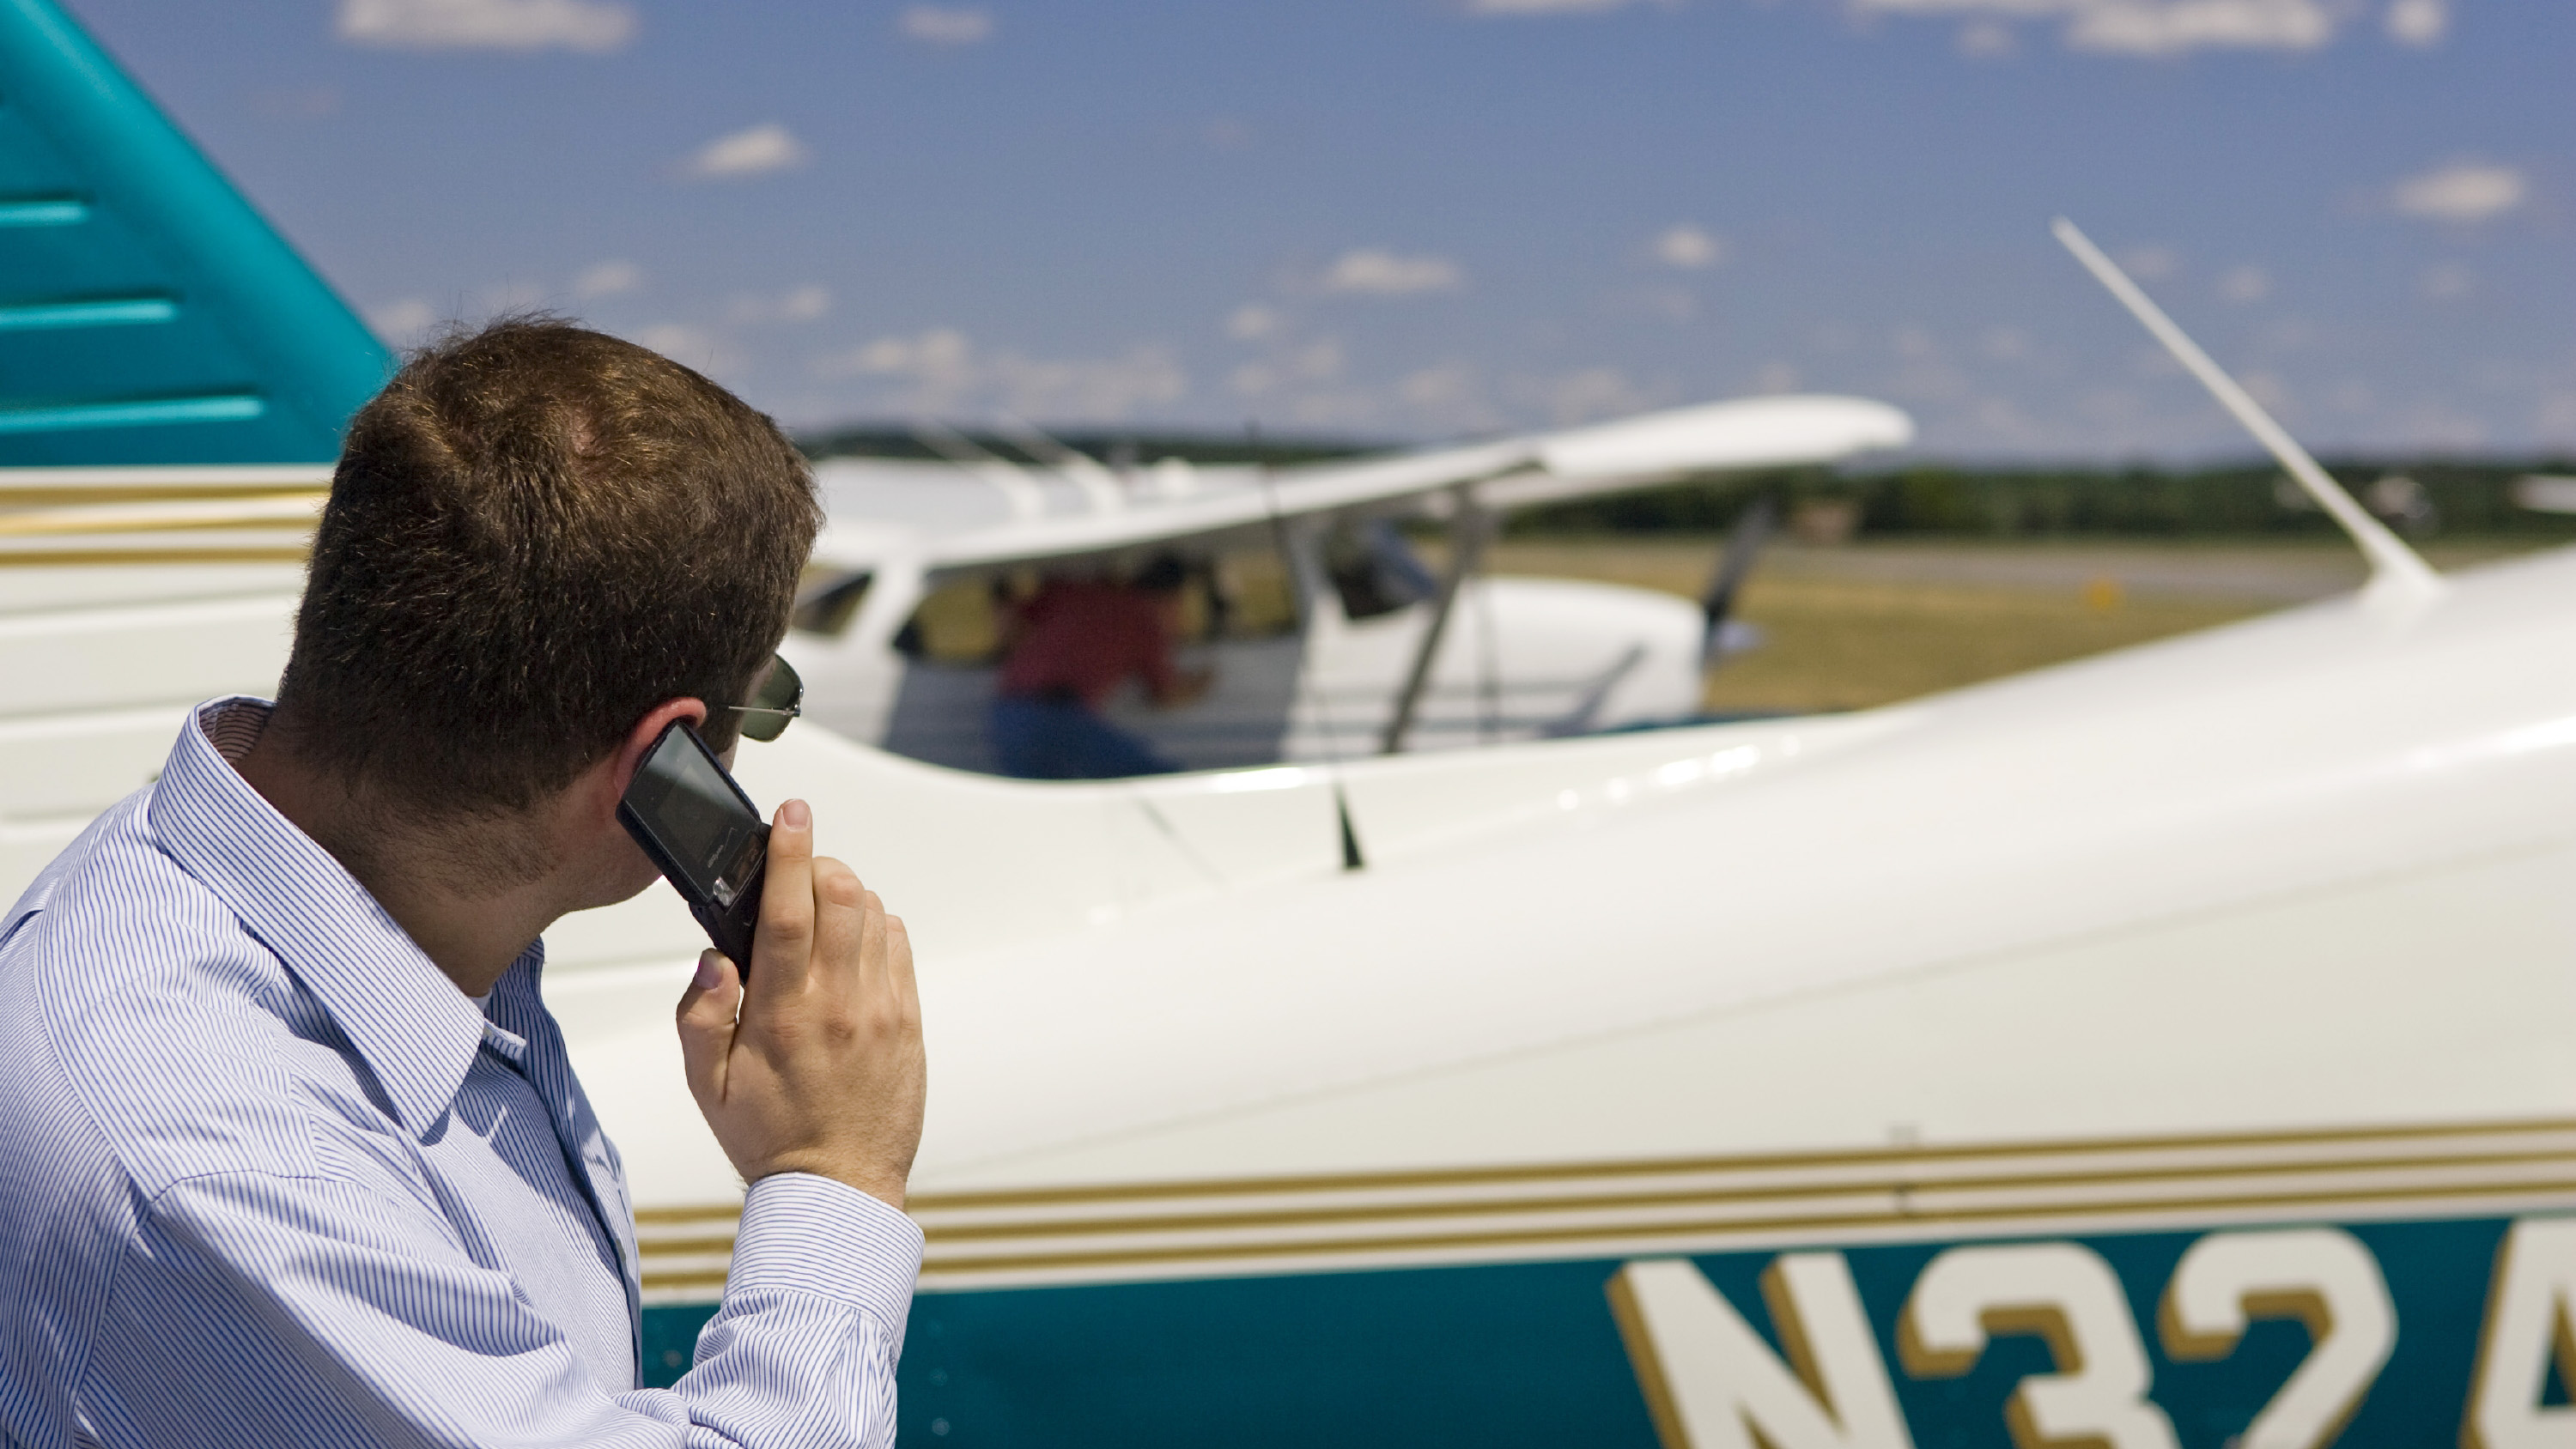 The AOPA Airport Watch Program is modeled after neighborhood watch programs across the nation and primarily relies on pilots remaining vigilant for suspicious activity in the airport environment. Photo by Chris Rose.